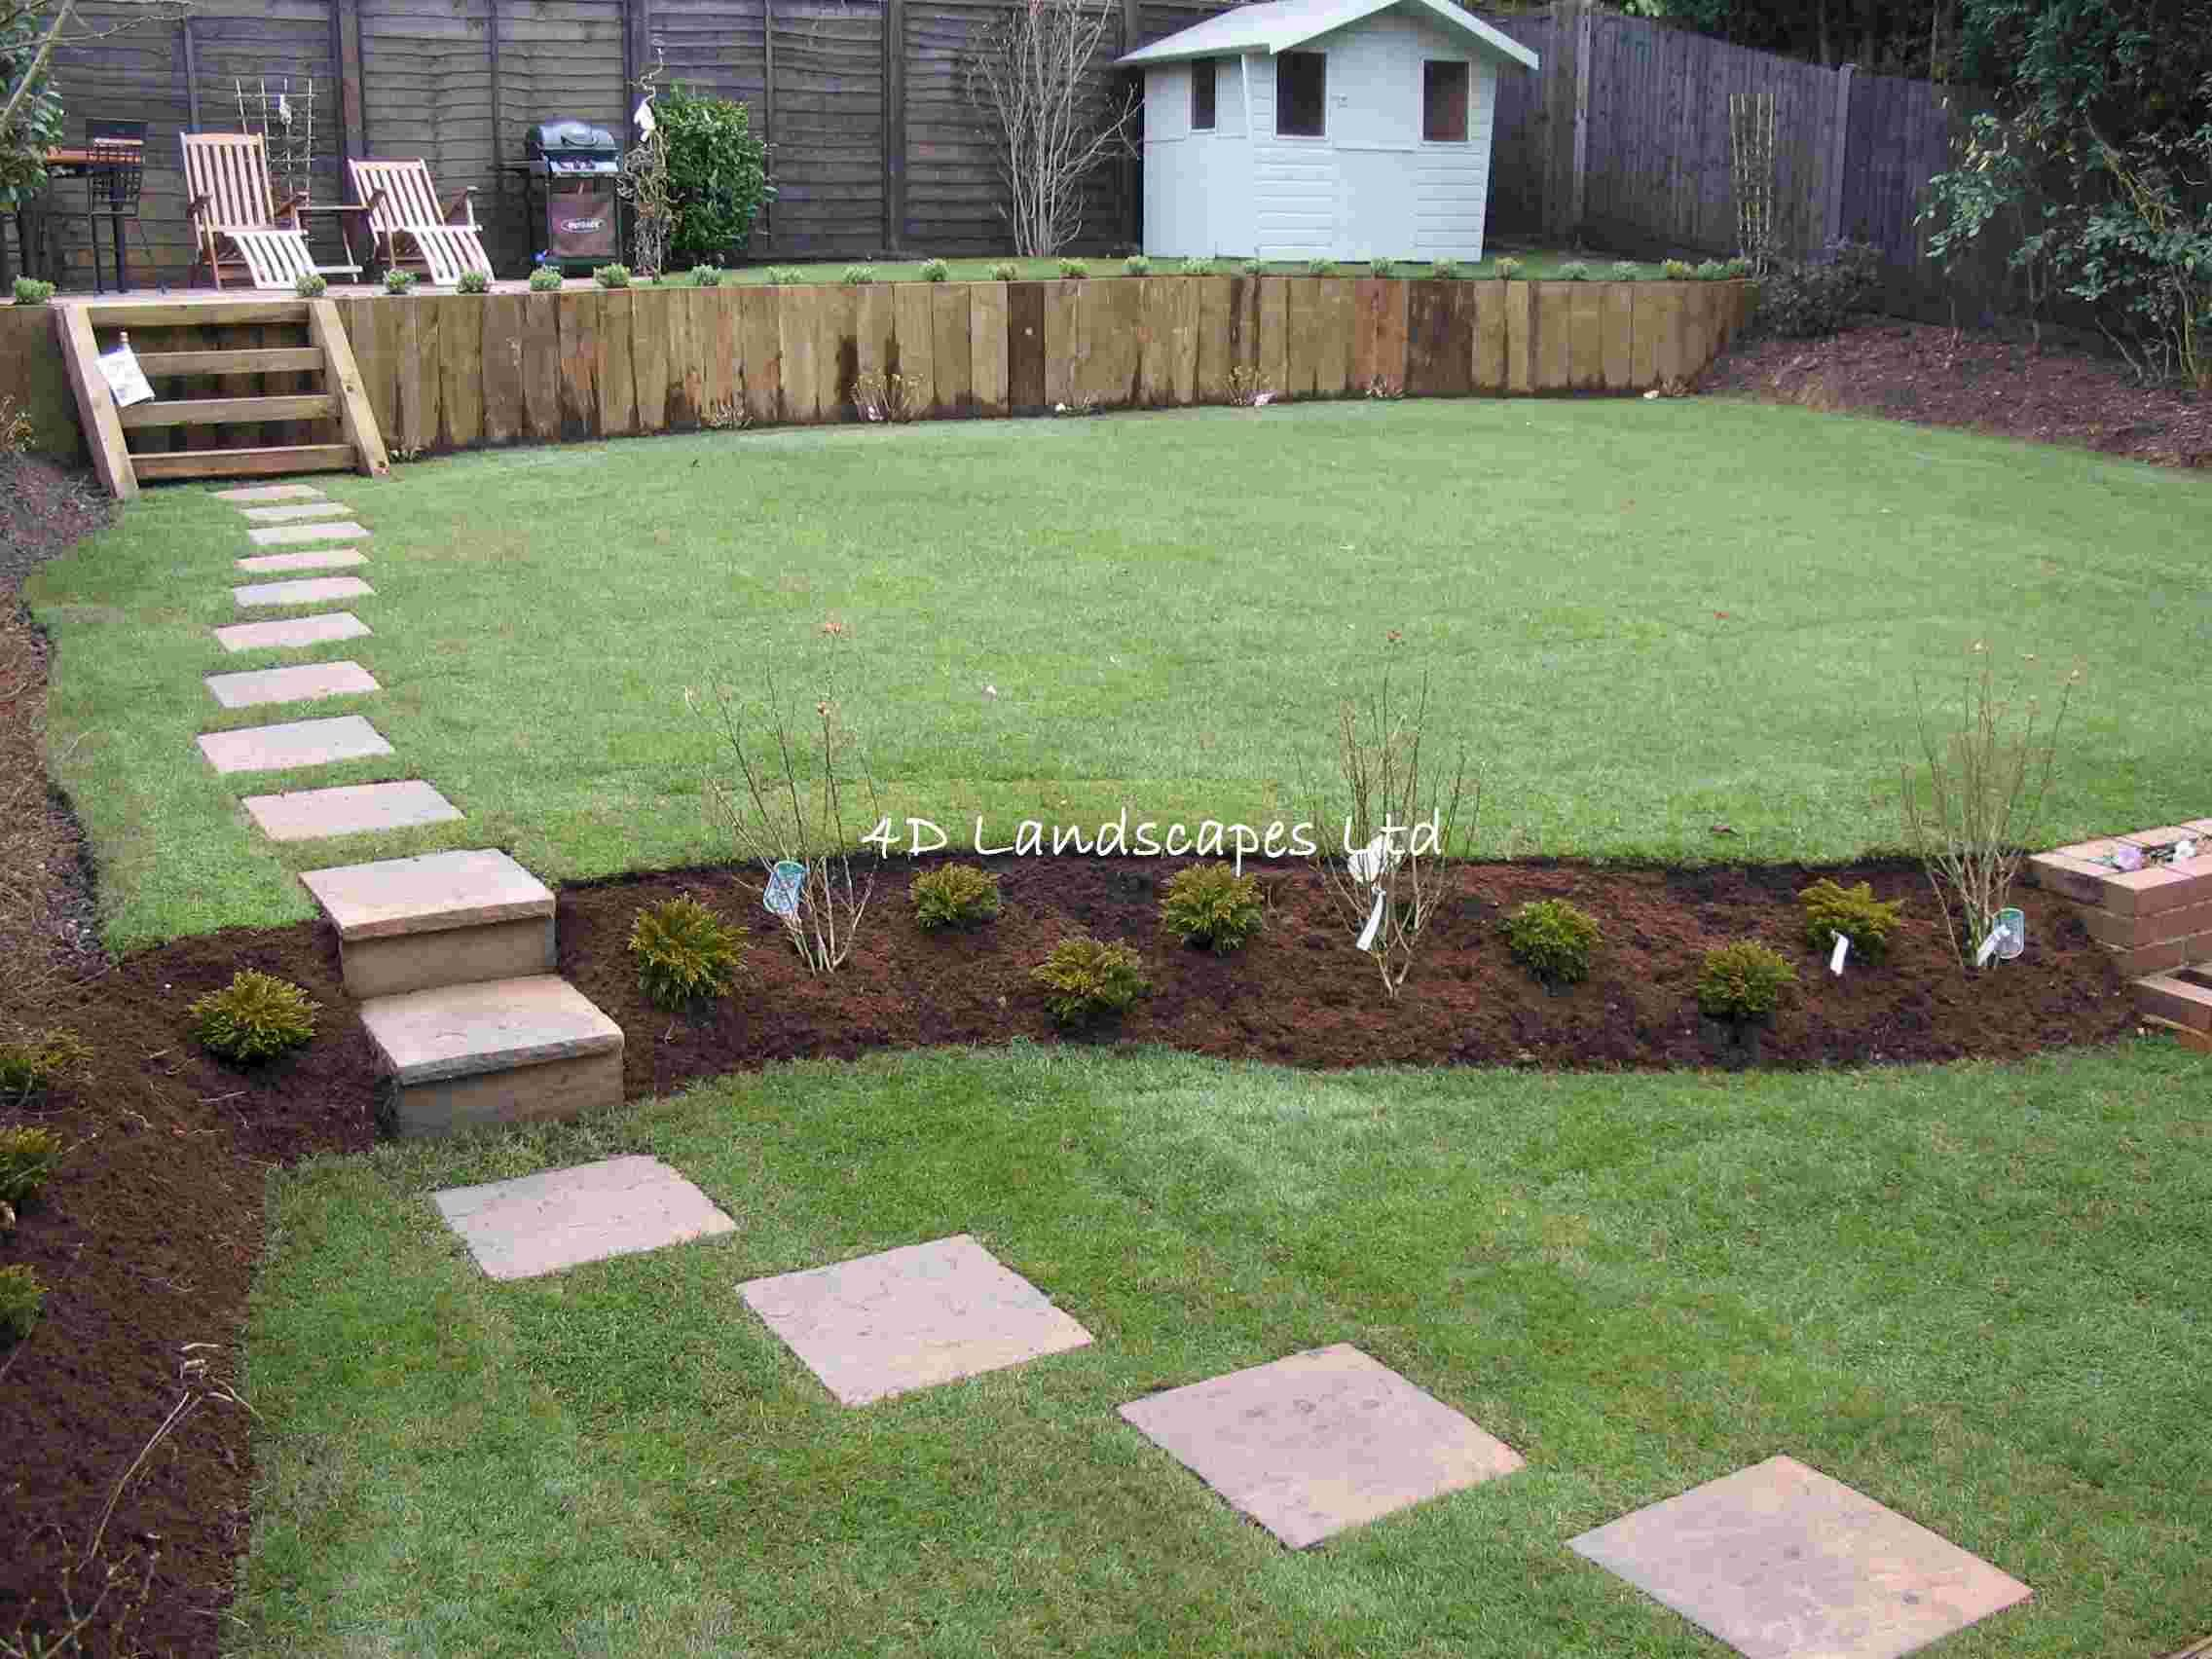 Backyard landscaping ideas with stones